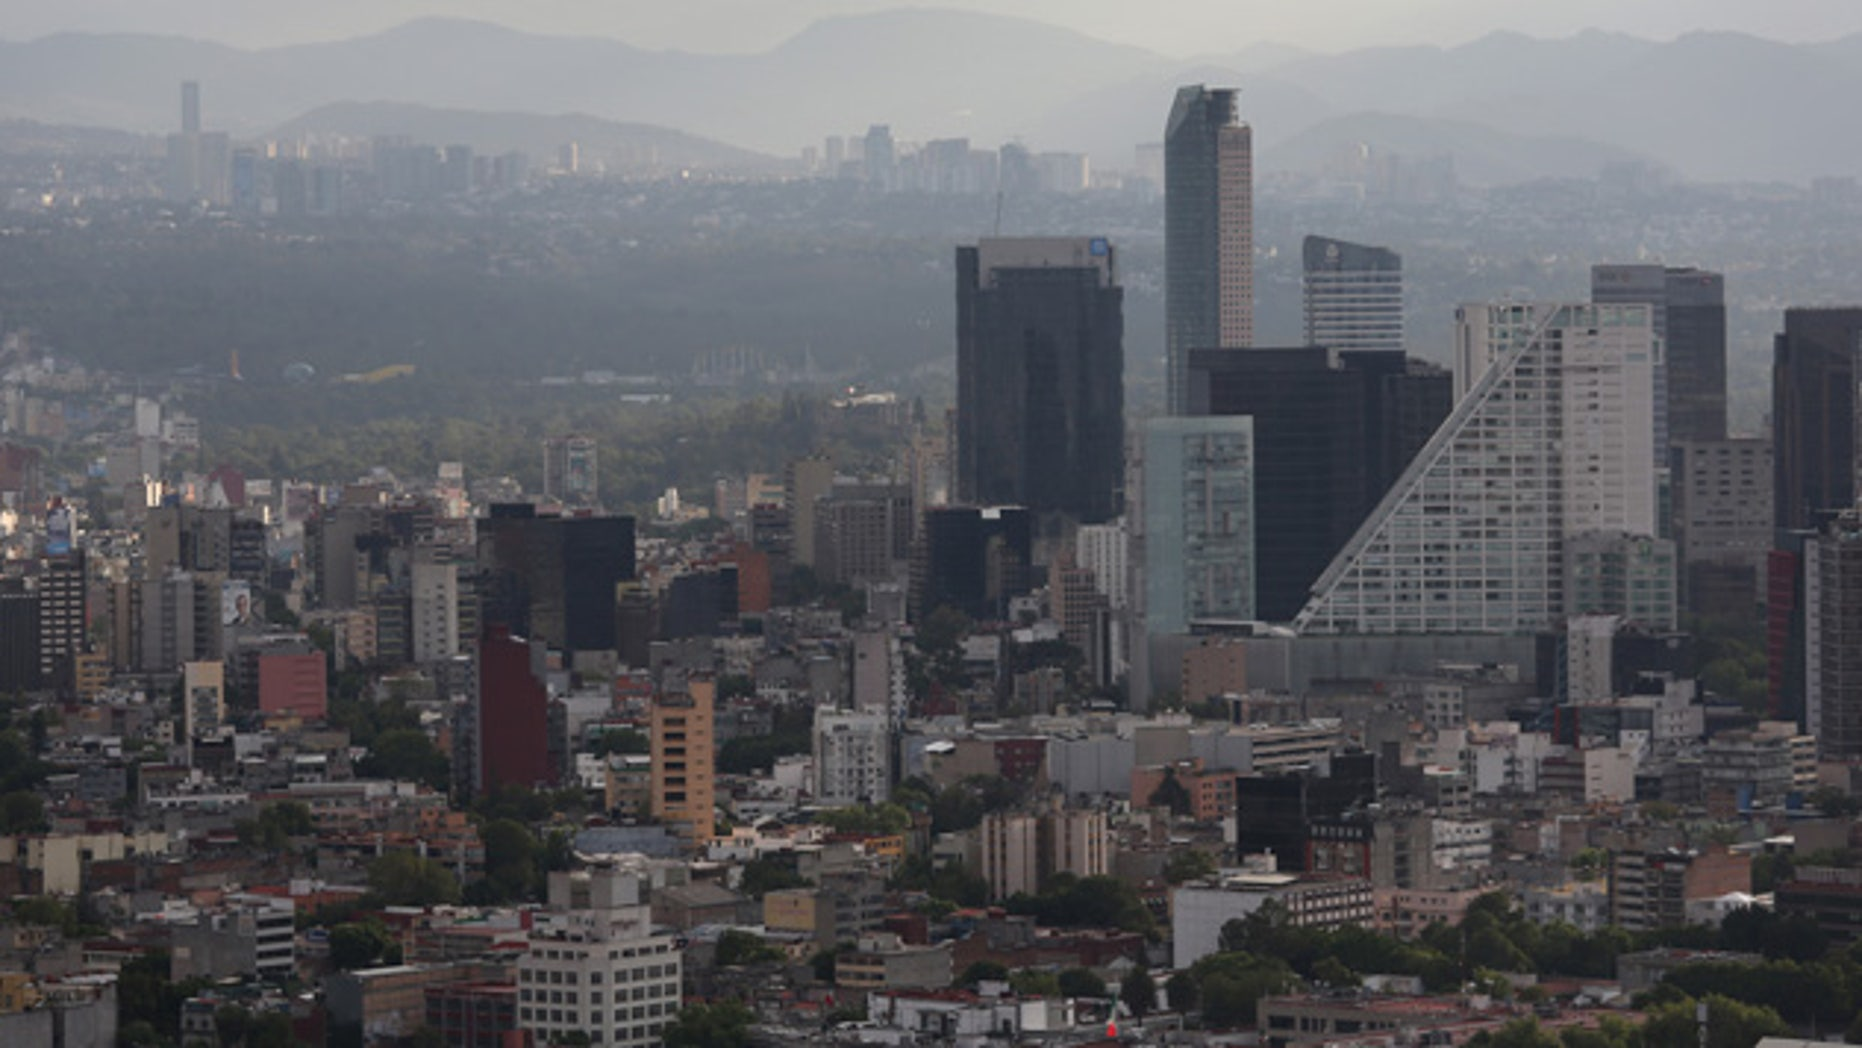 Mexico City skyline is seen through the haze from the Latino Tower in Mexico City, Mexico.  (Photo by John Moore/Getty Images)